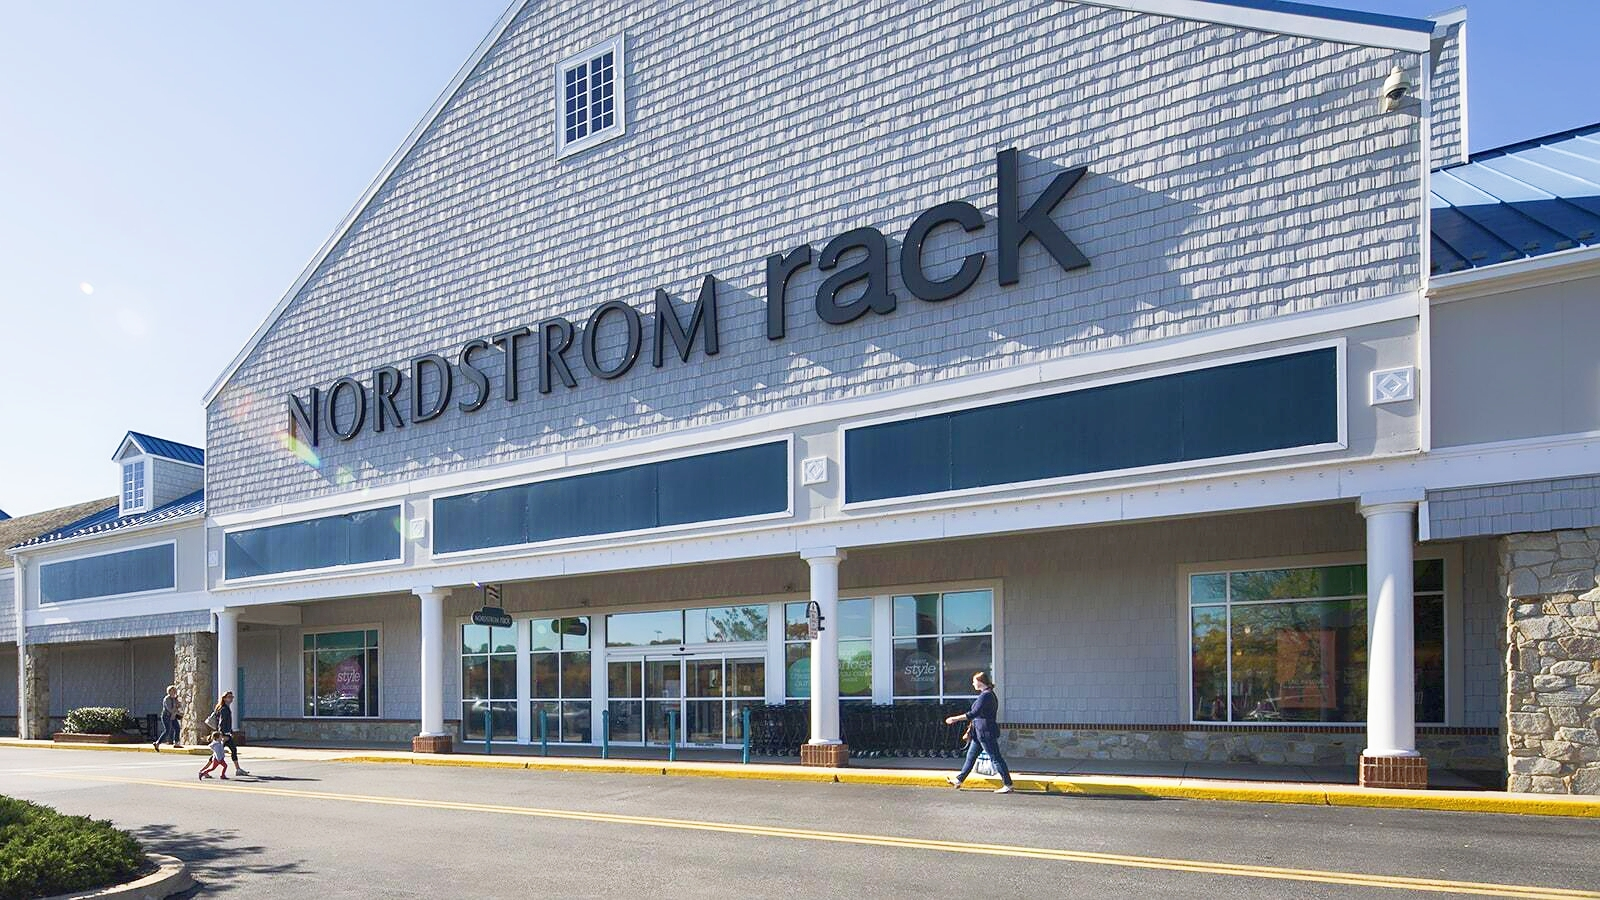 Nordstrom Rack Cyber Monday 2020 2 - Nordstrom Rack Cyber Monday 2020